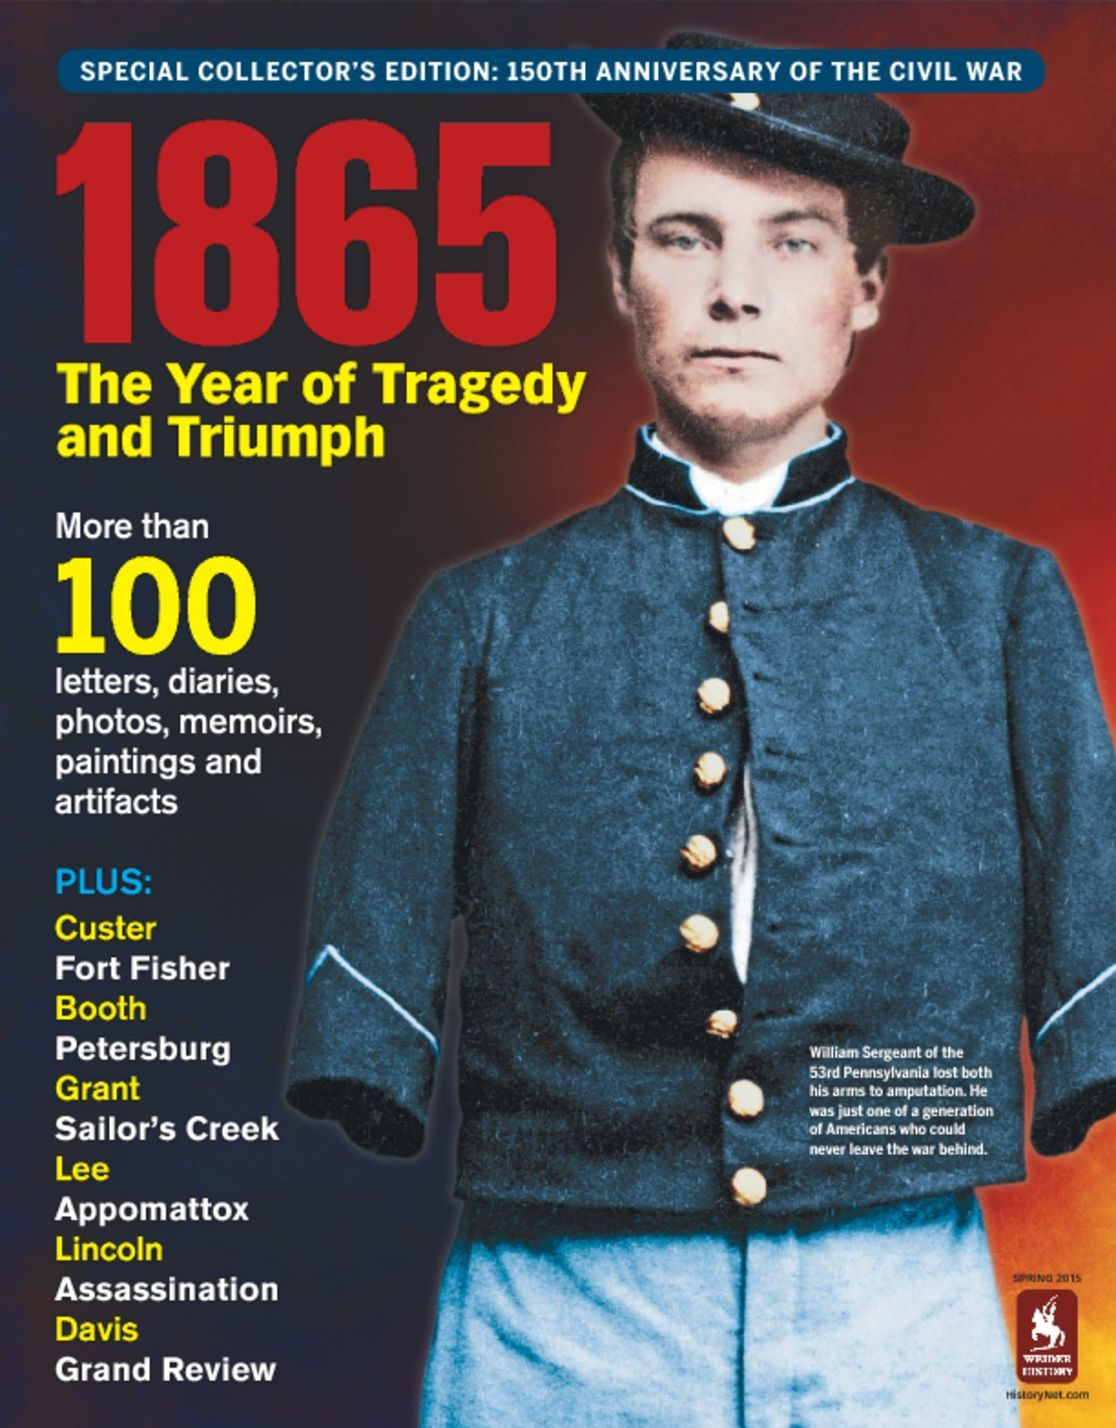 1865 The Year of Tragedy and Triumph Digital